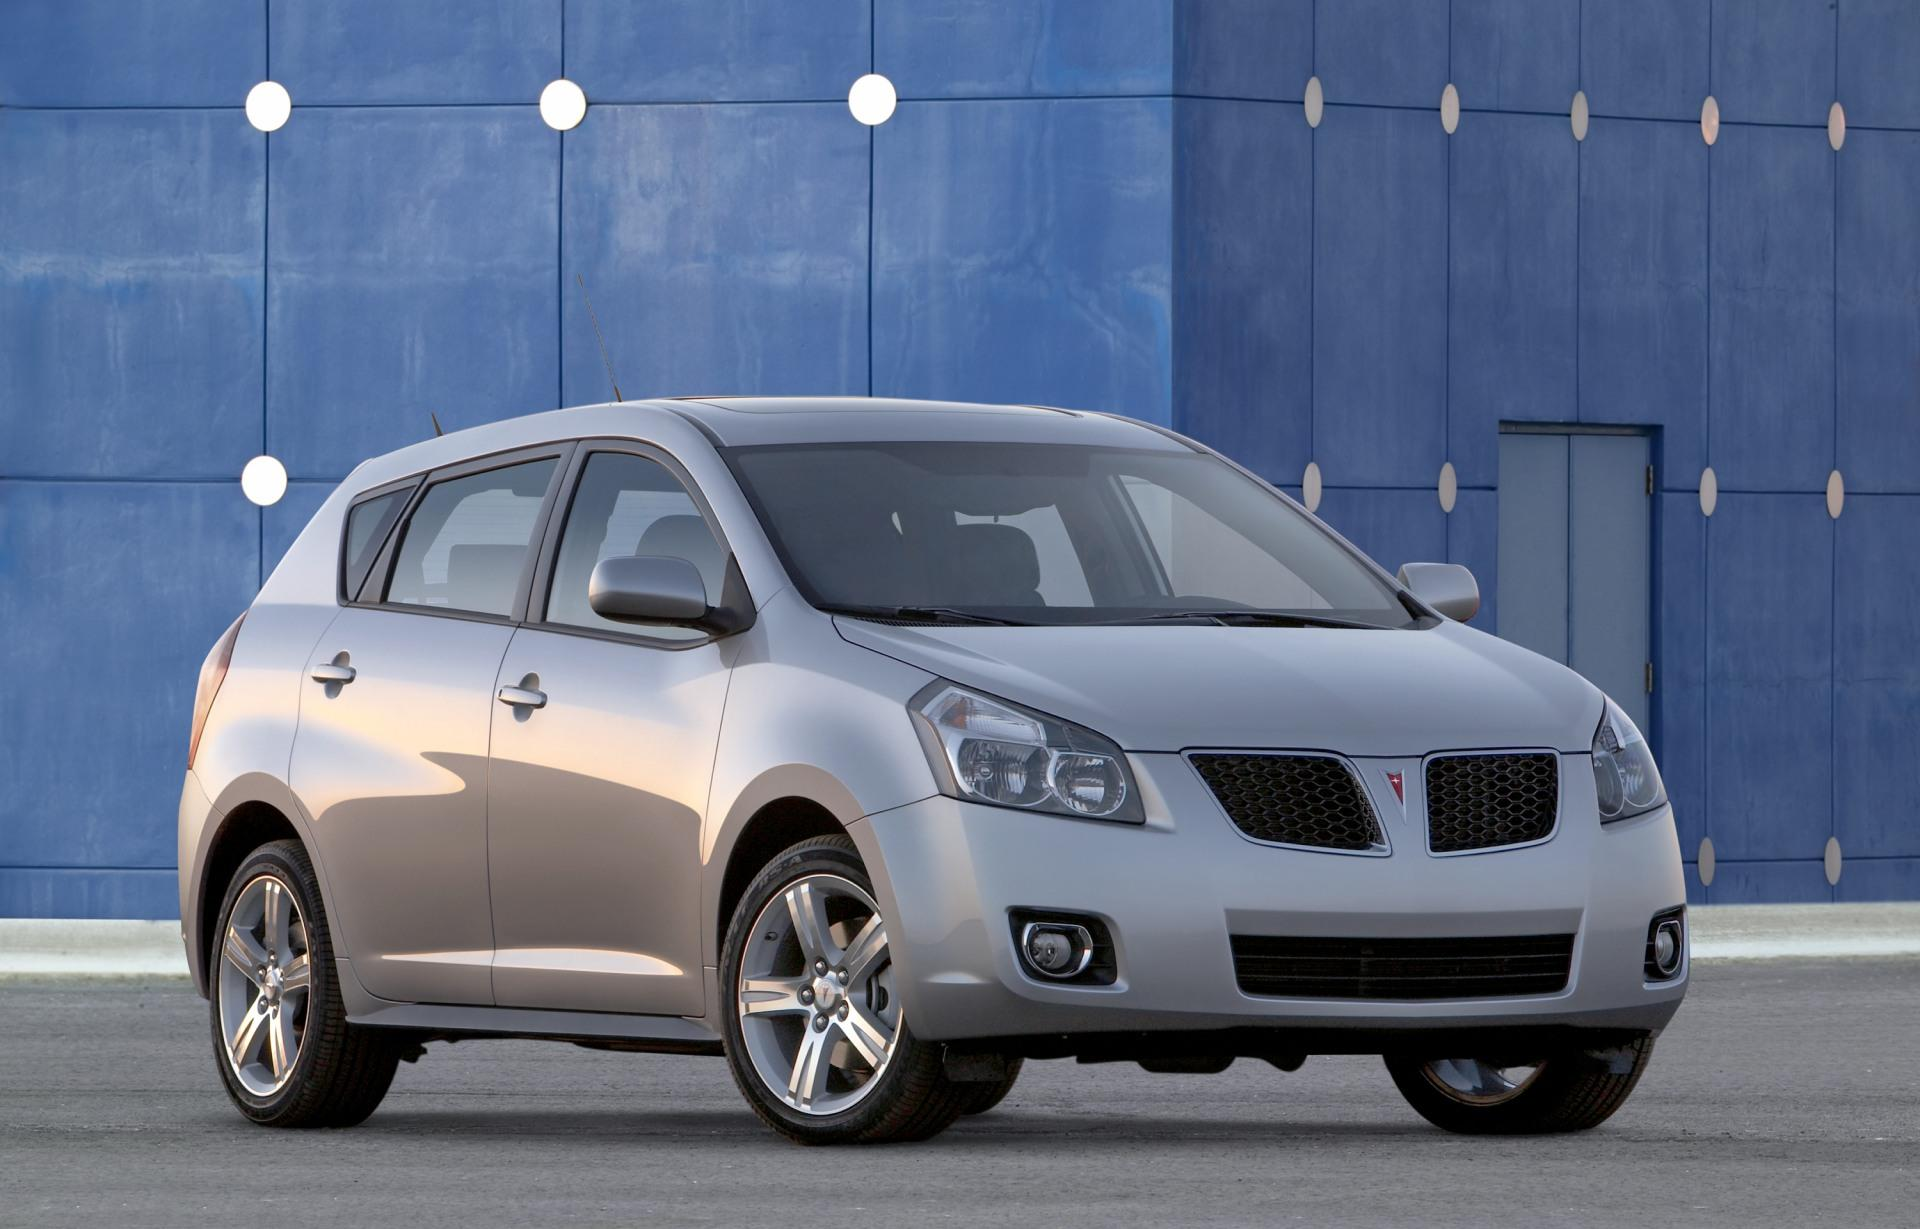 2009 pontiac vibe technical specifications and data. Black Bedroom Furniture Sets. Home Design Ideas